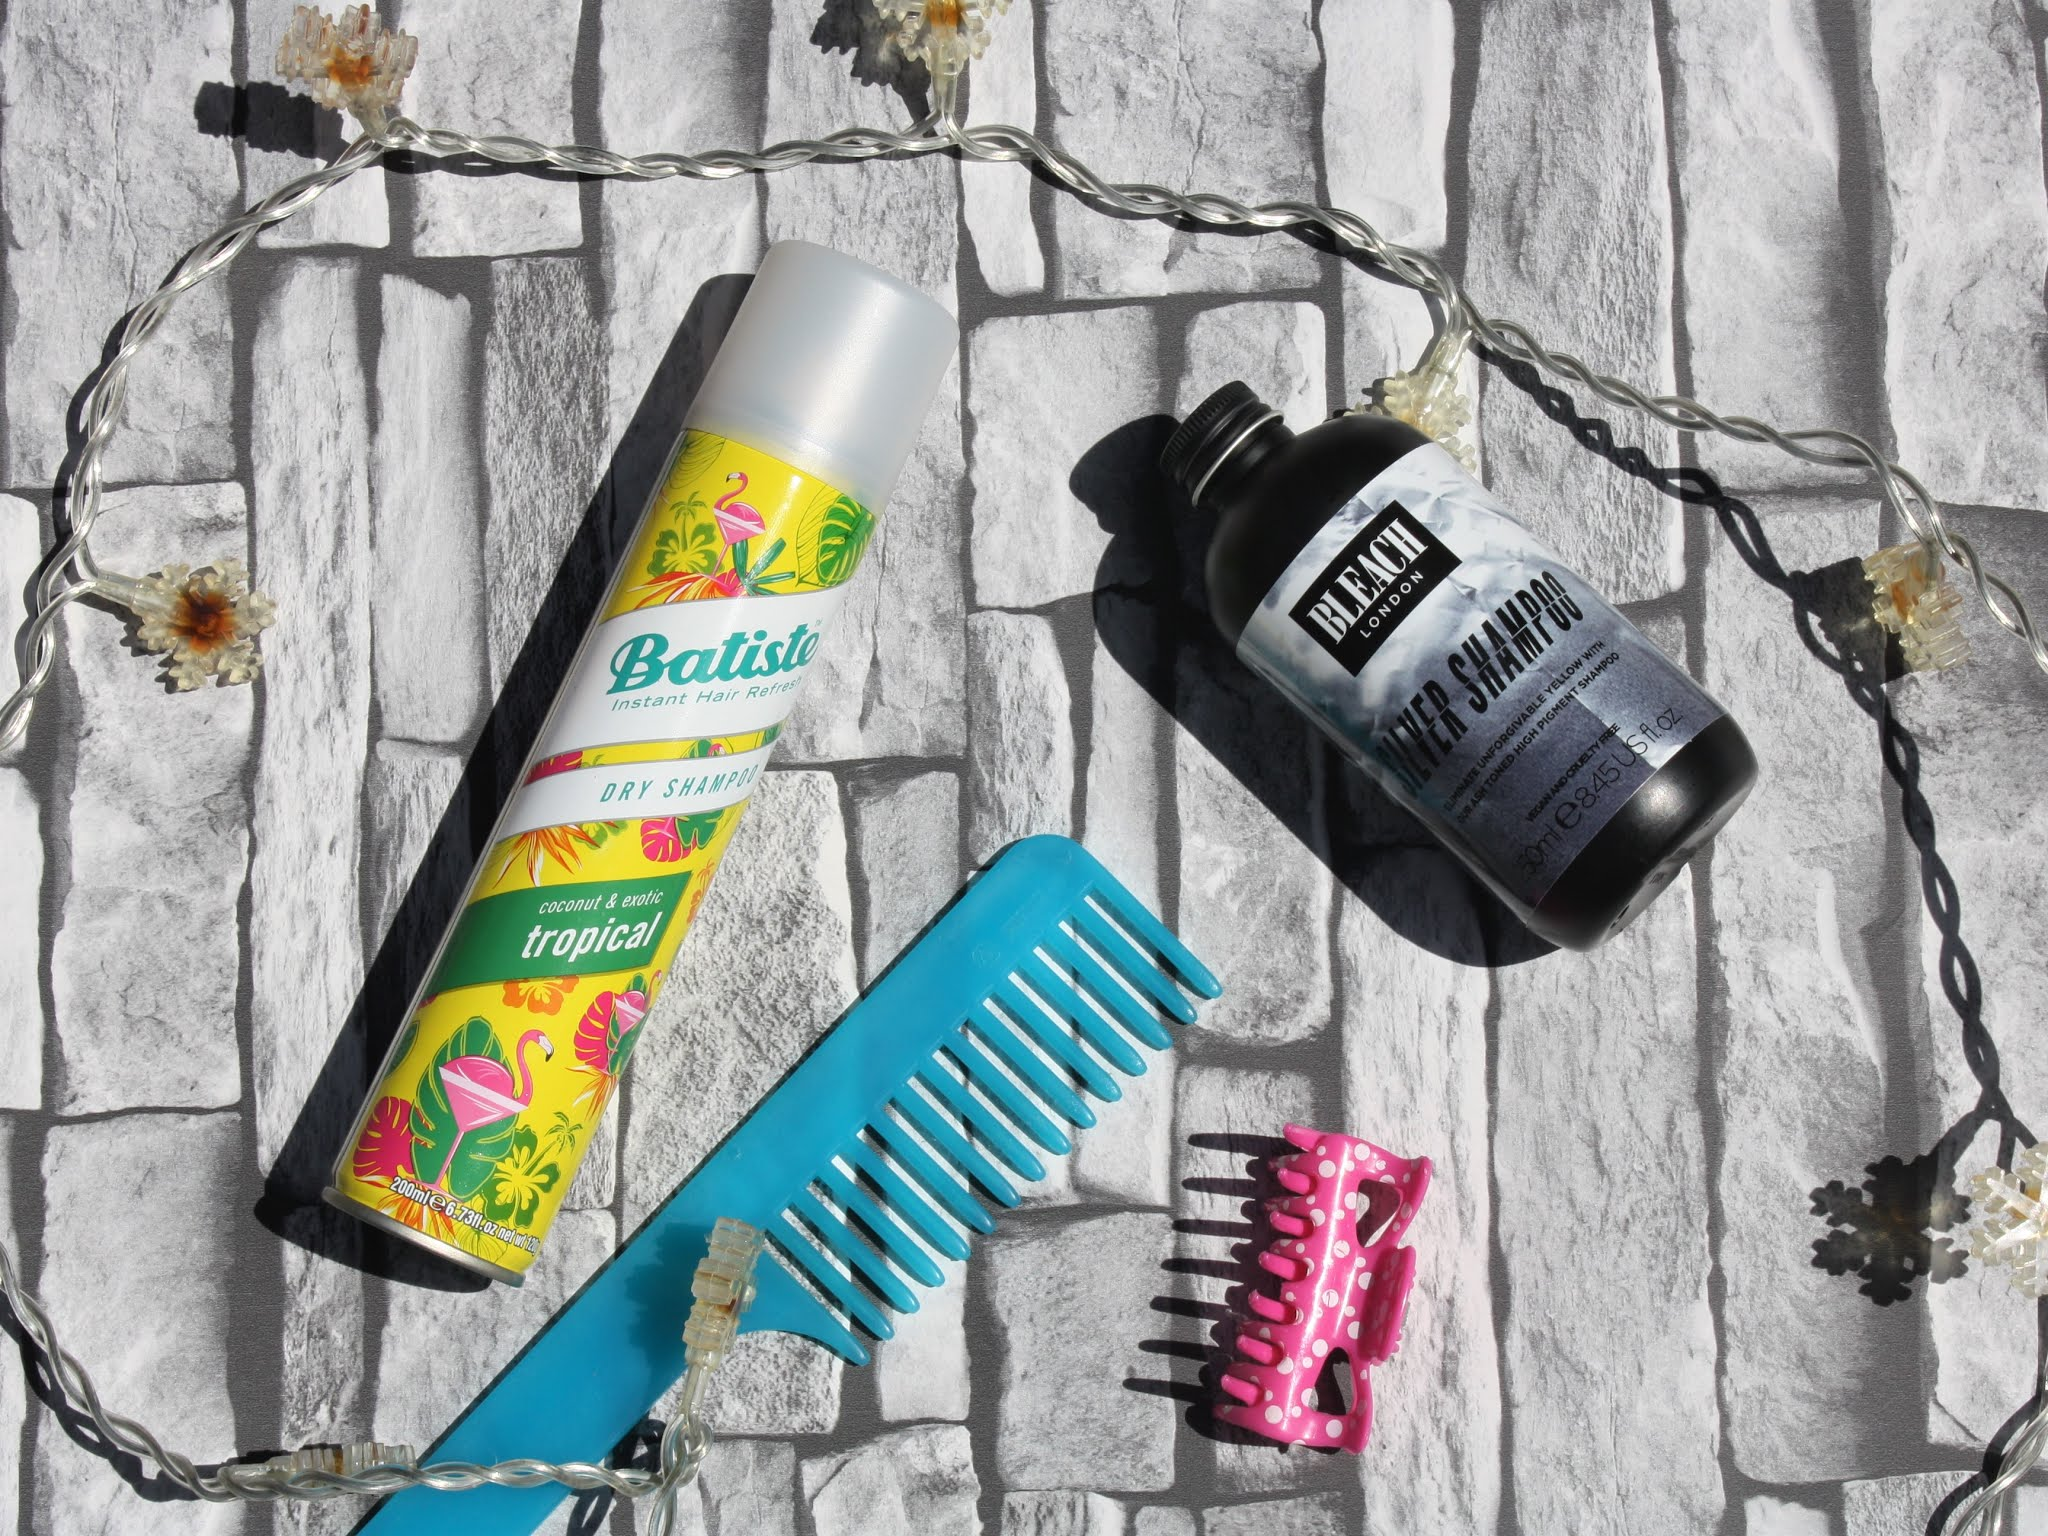 dry shampoo and hair products